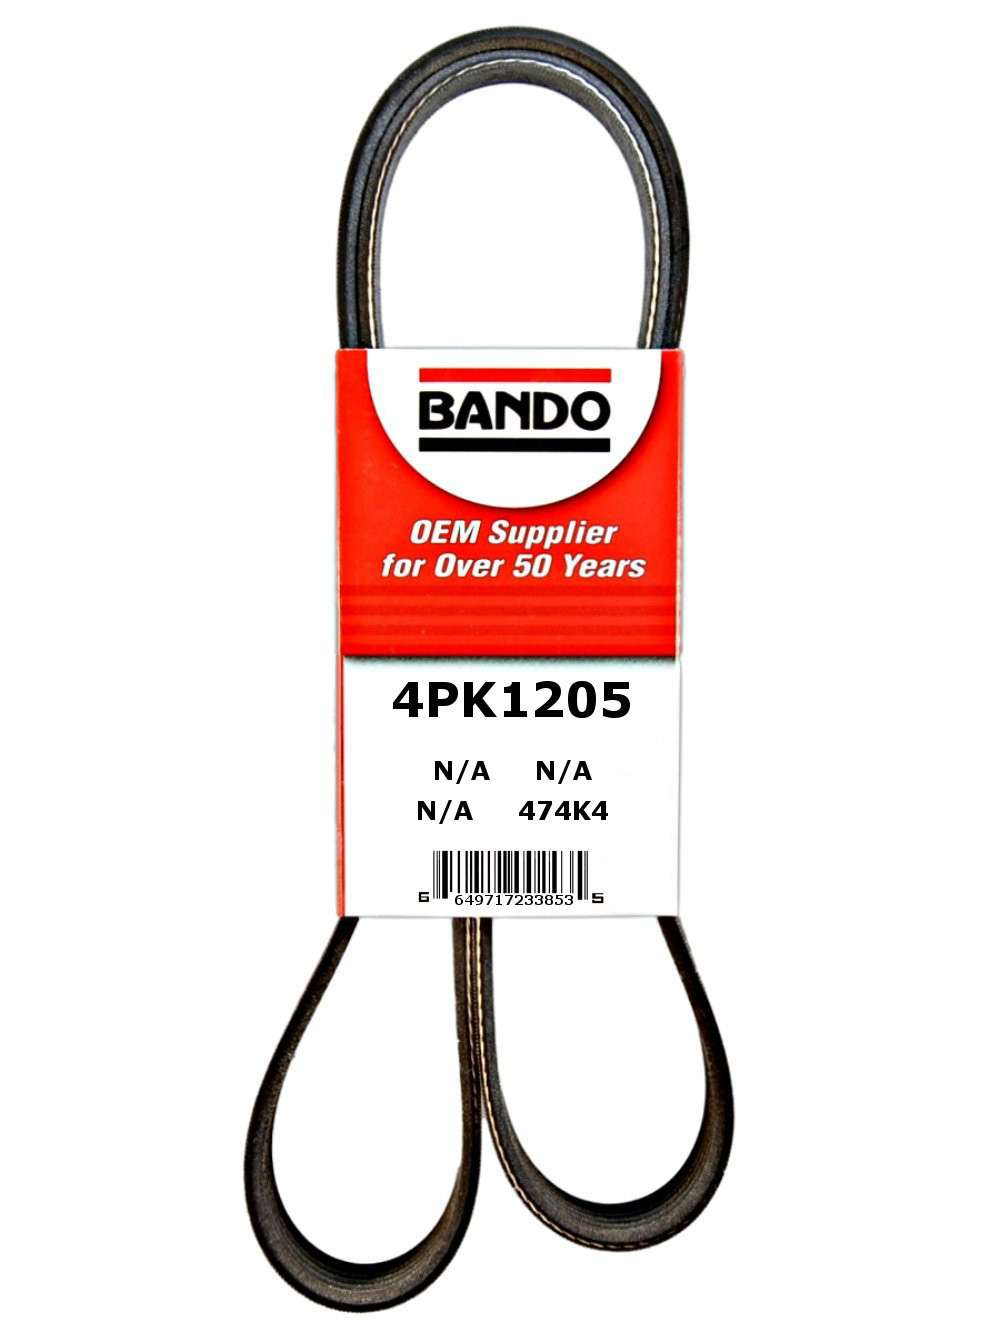 BANDO - Rib Ace Precision Engineered V-Ribbed Belt (Alternator, Water Pump and Air Conditioning) - BWO 4PK1205